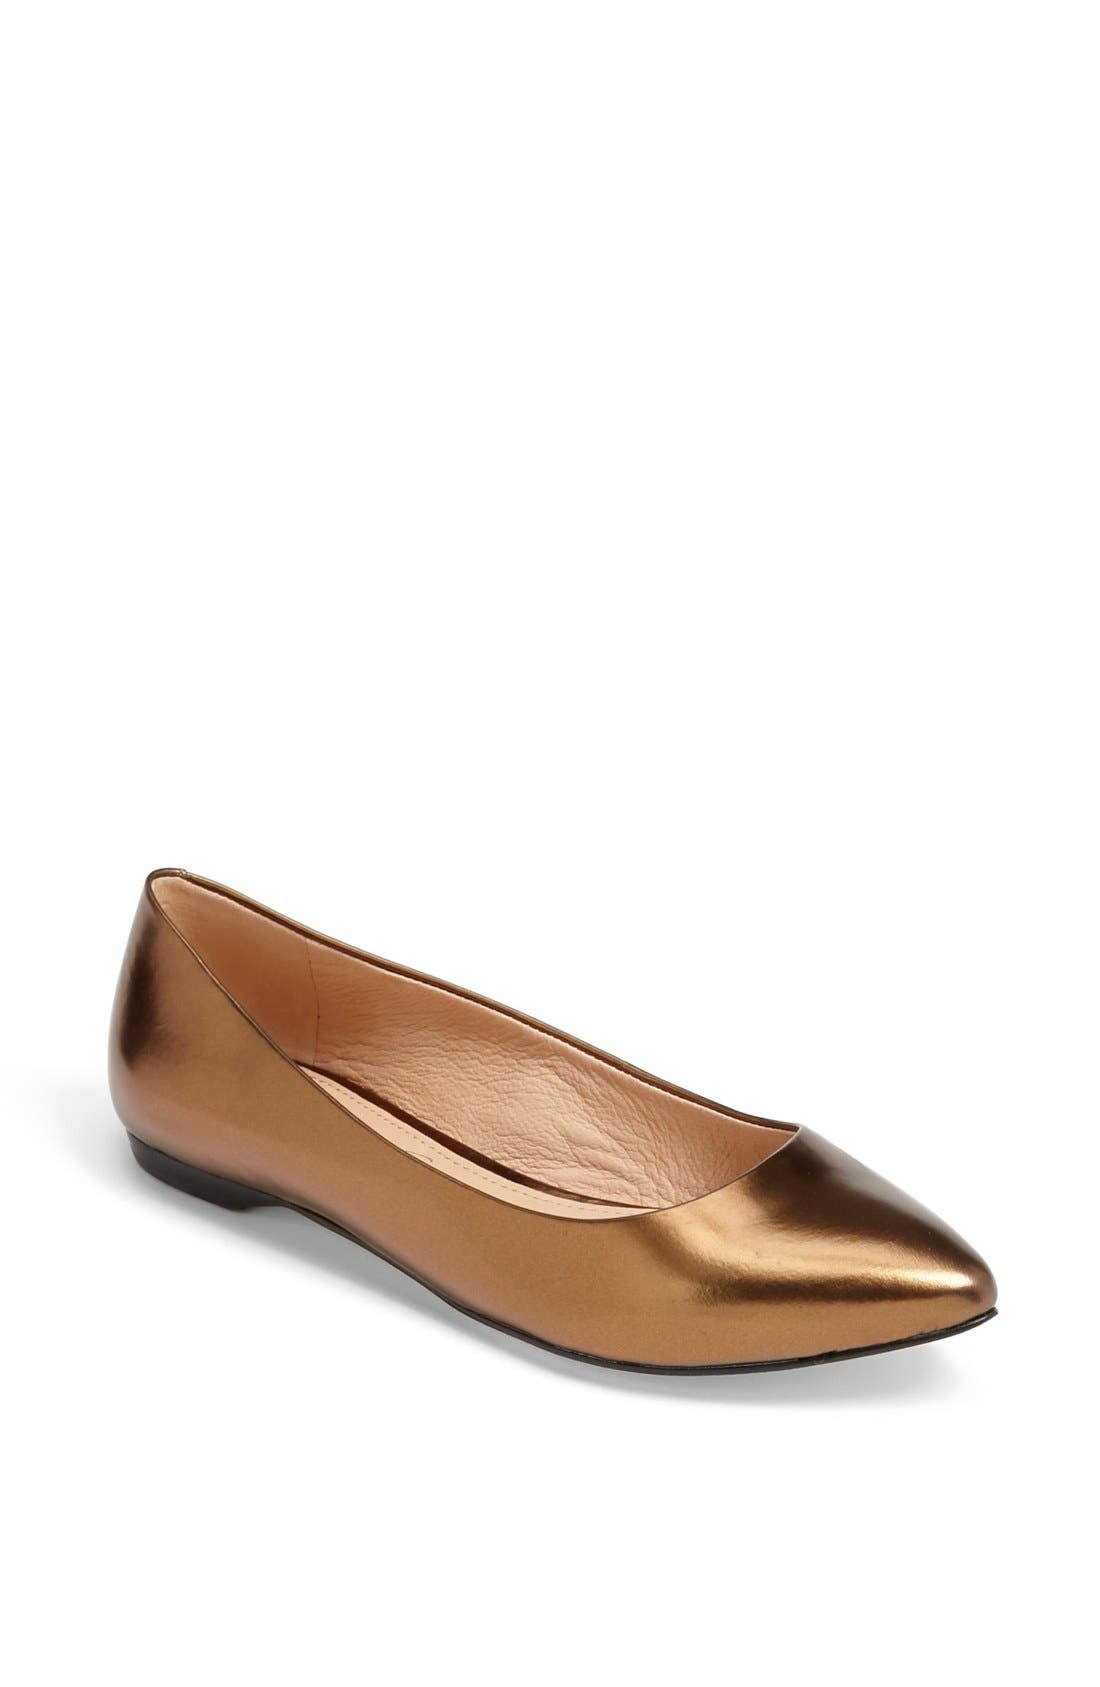 Main Image - Kenneth Cole New York 'Take Chances' Flat